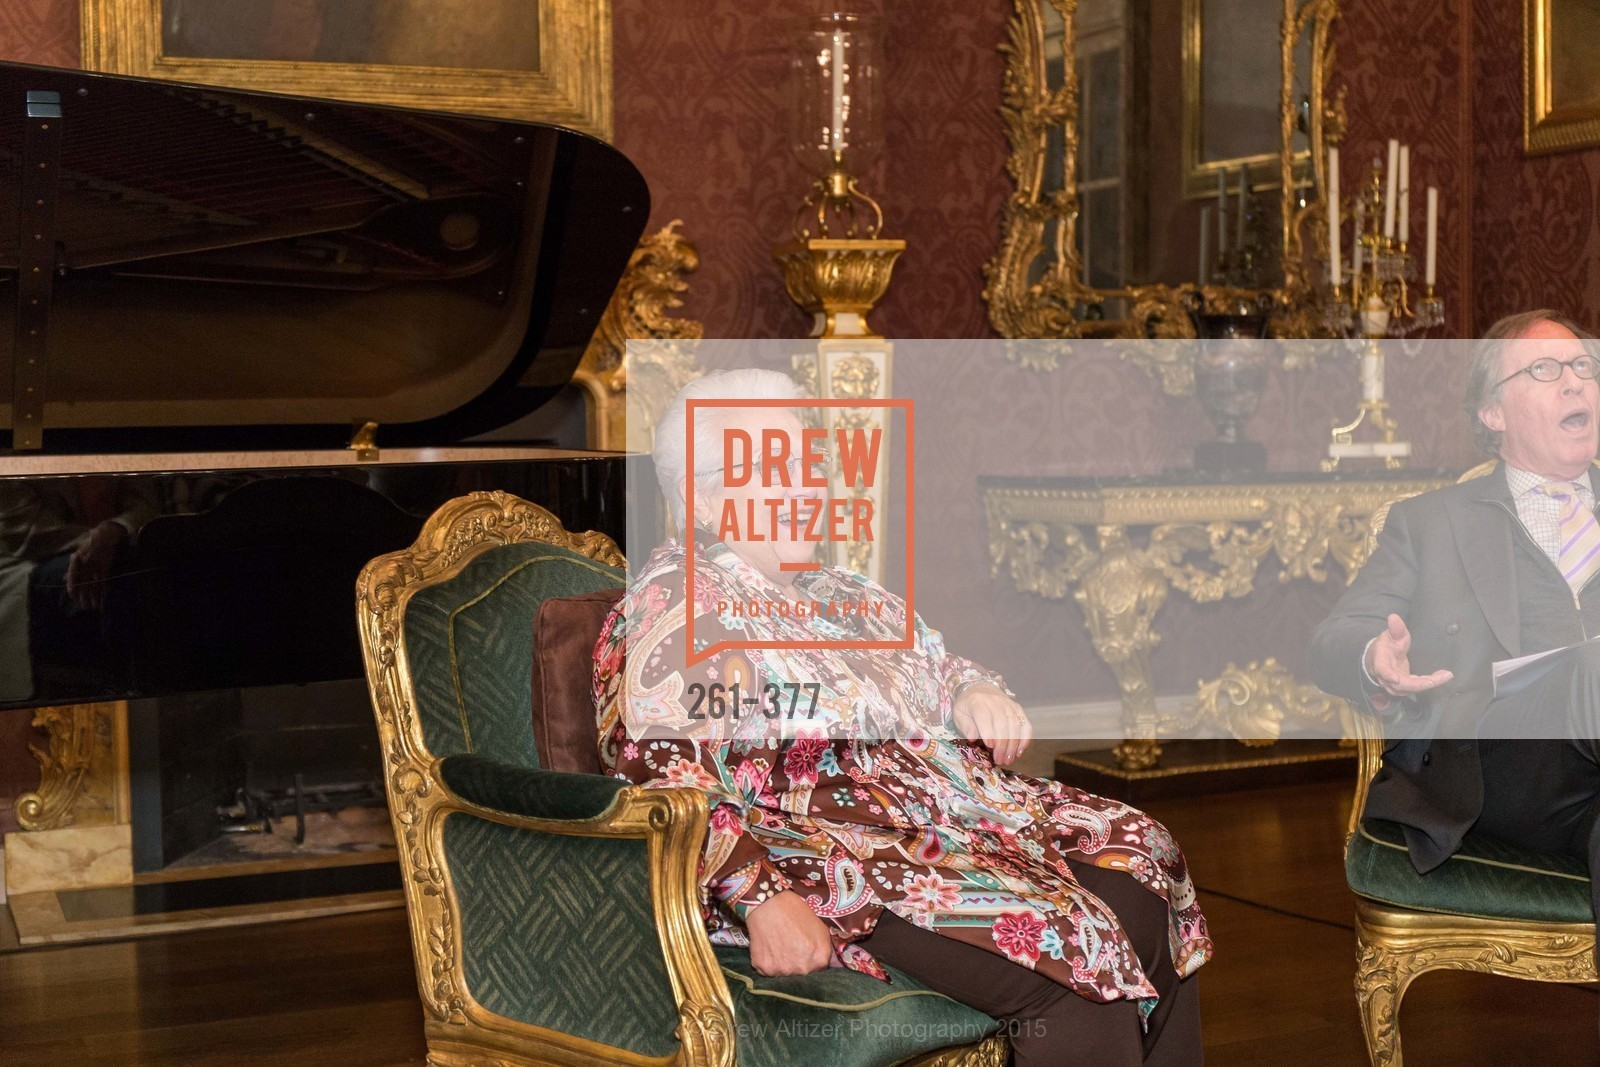 Marilyn Horne, Getty Host SF Conservatory of Music with Marilyn Horne, Private Residence, October 15th, 2015,Drew Altizer, Drew Altizer Photography, full-service agency, private events, San Francisco photographer, photographer california